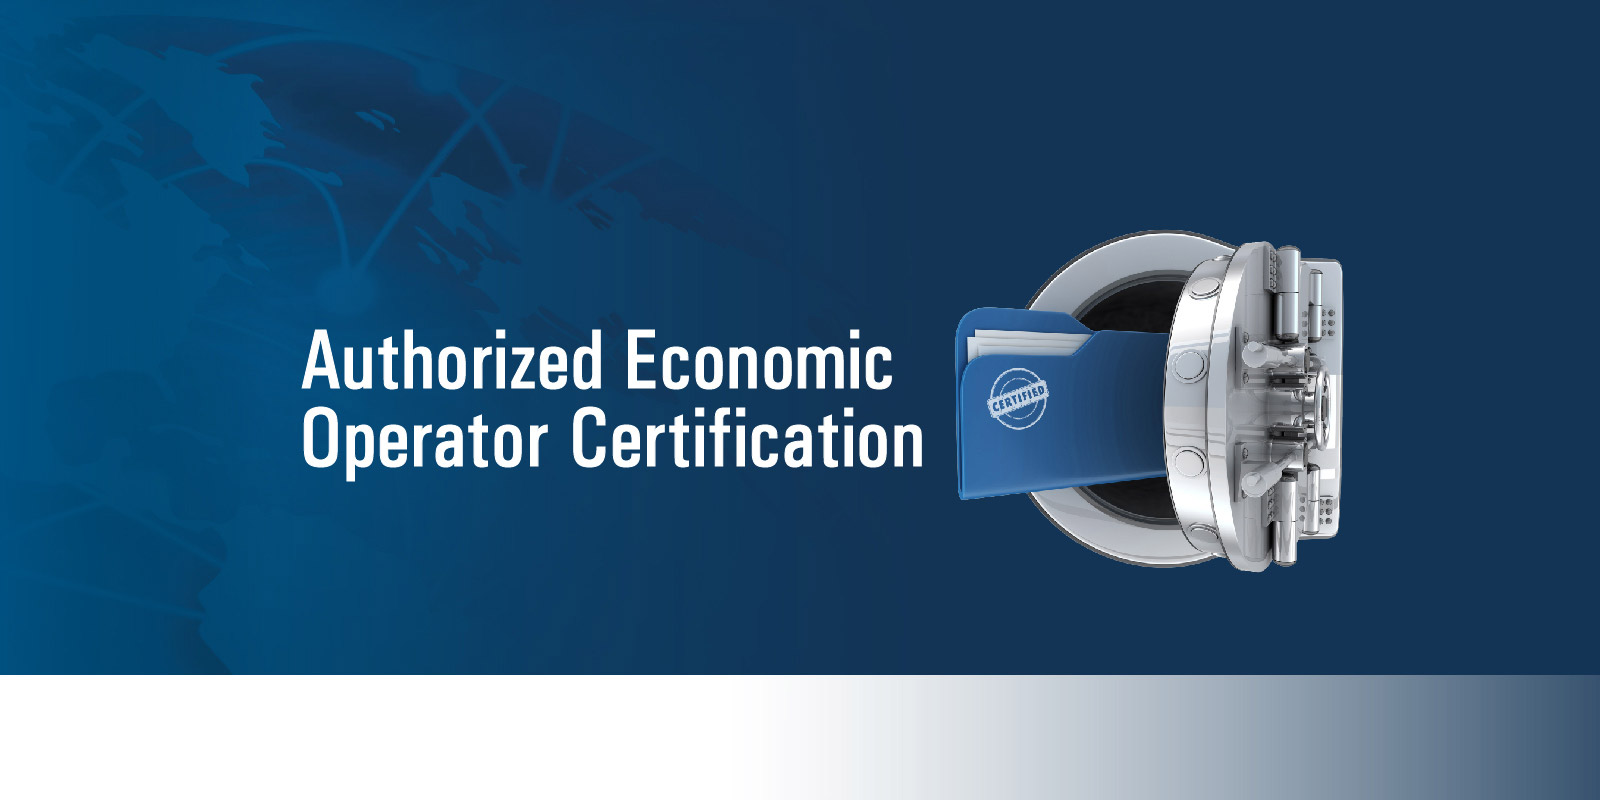 Authorized Economic Operator Certification